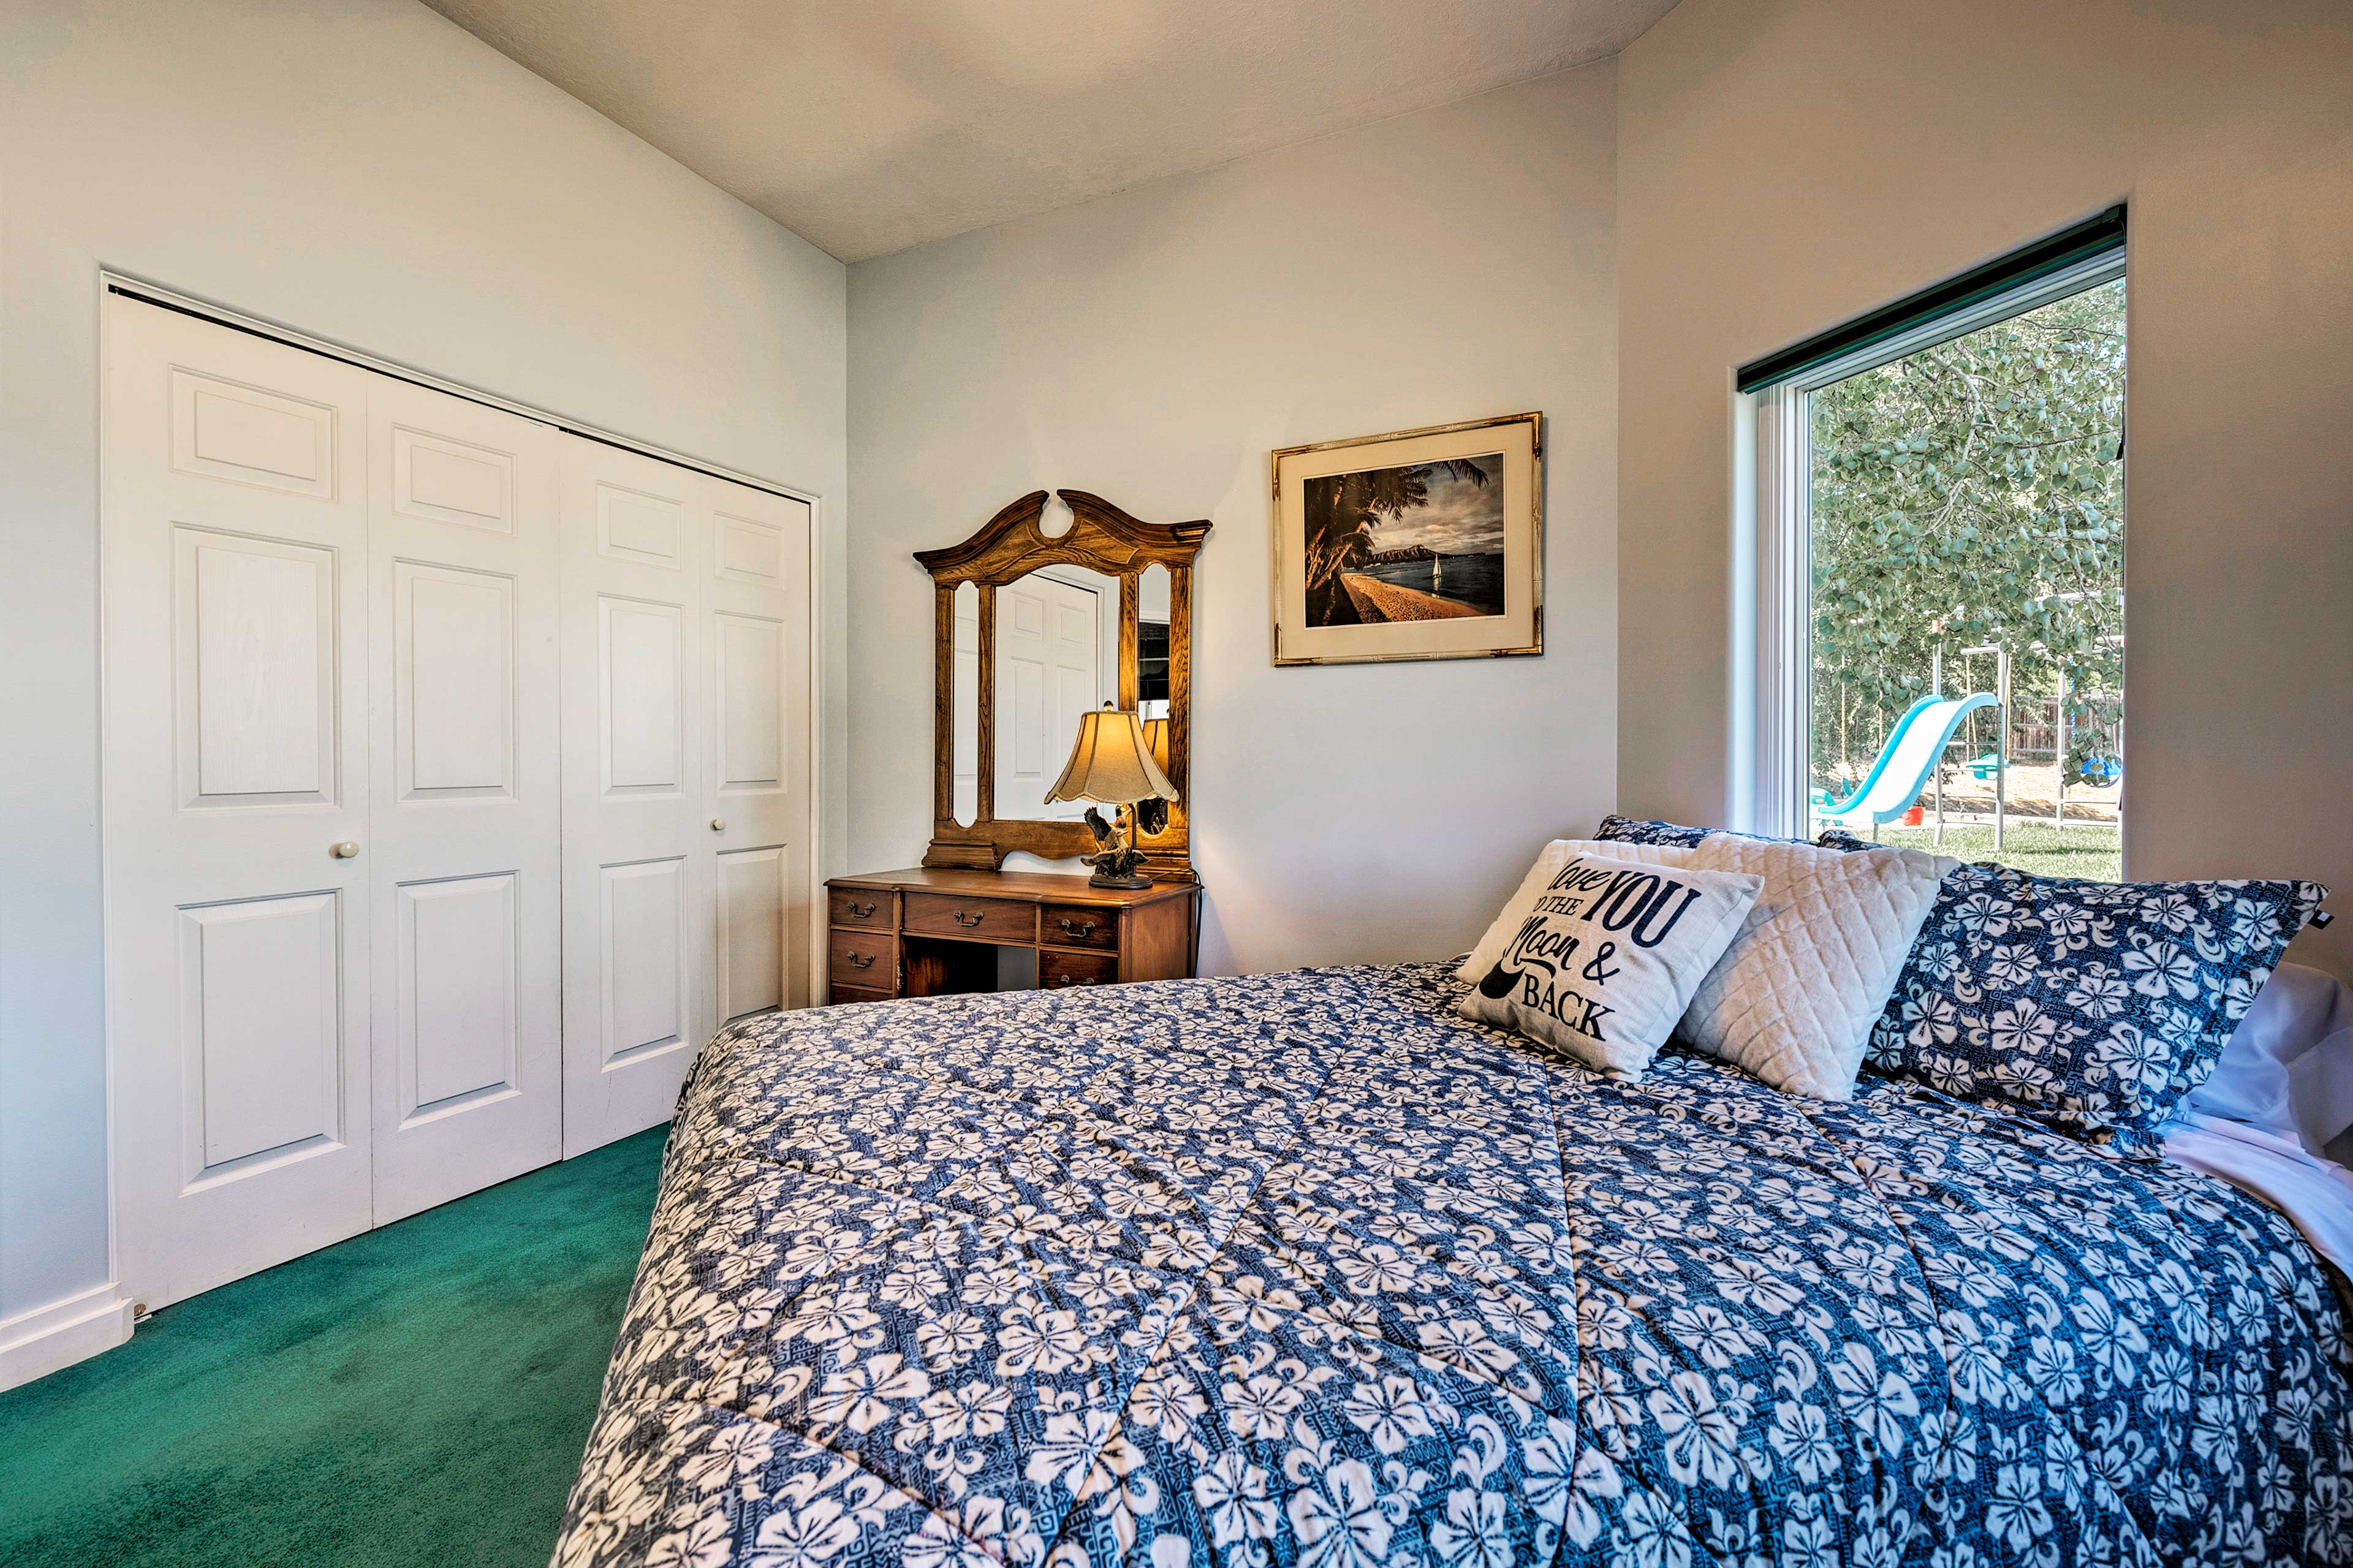 Large windows and a queen-sized bed complete this room.